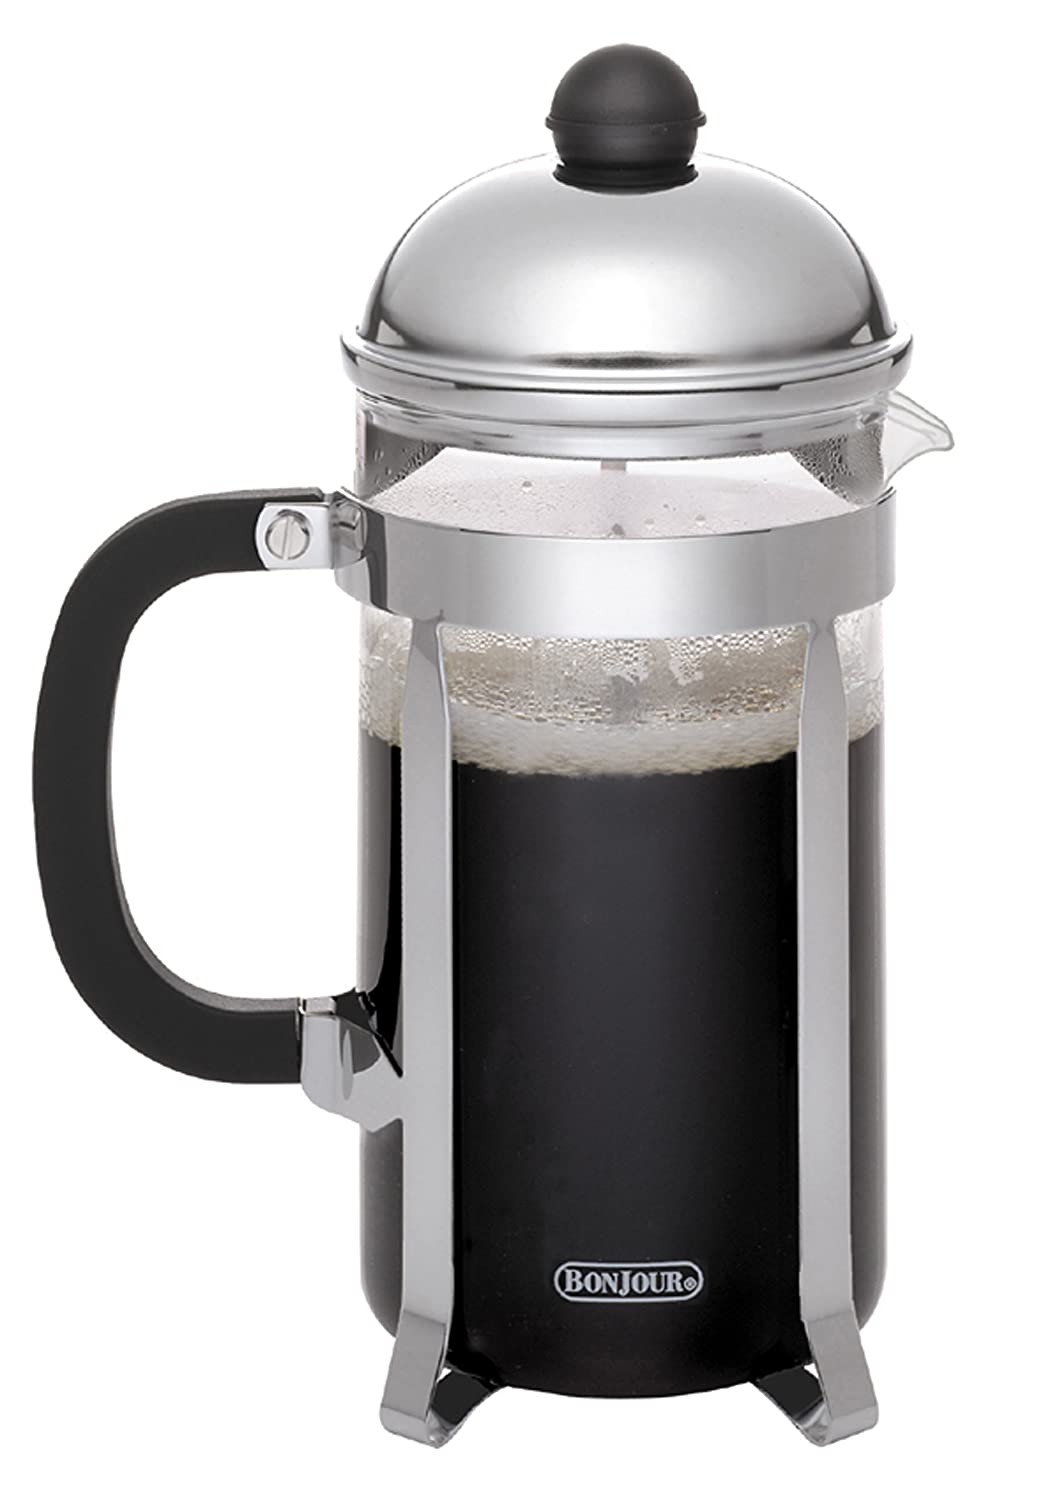 Bed bath beyond french press - Amazon Com Bonjour Coffee Stainless Steel French Press With Glass Carafe 12 7 Ounce Monet Black Handle Kitchen Dining